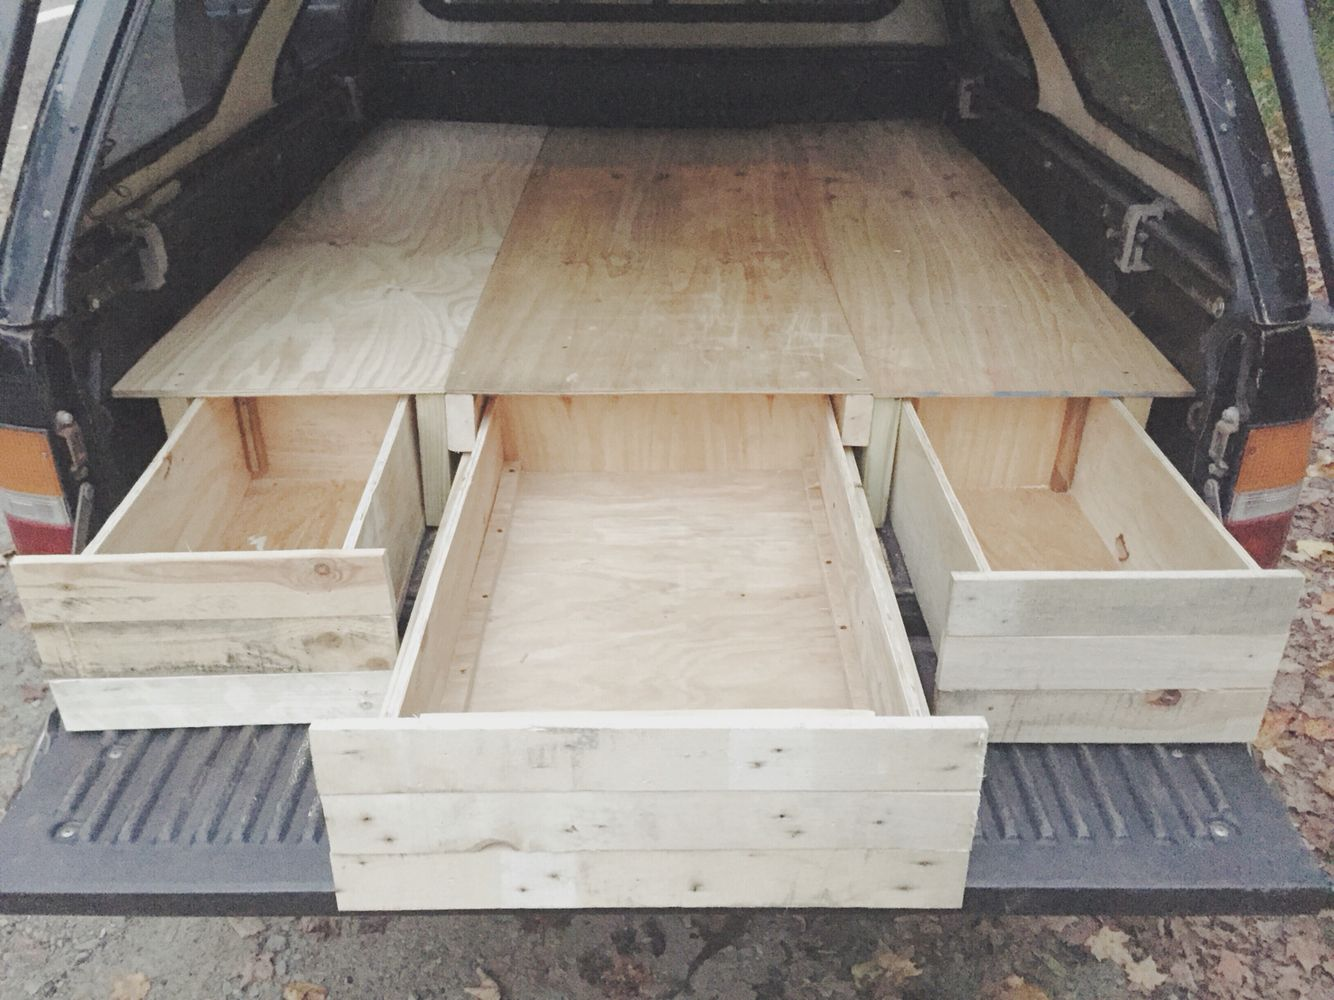 DIY truck bed camper! Made completely from reclaimed wood